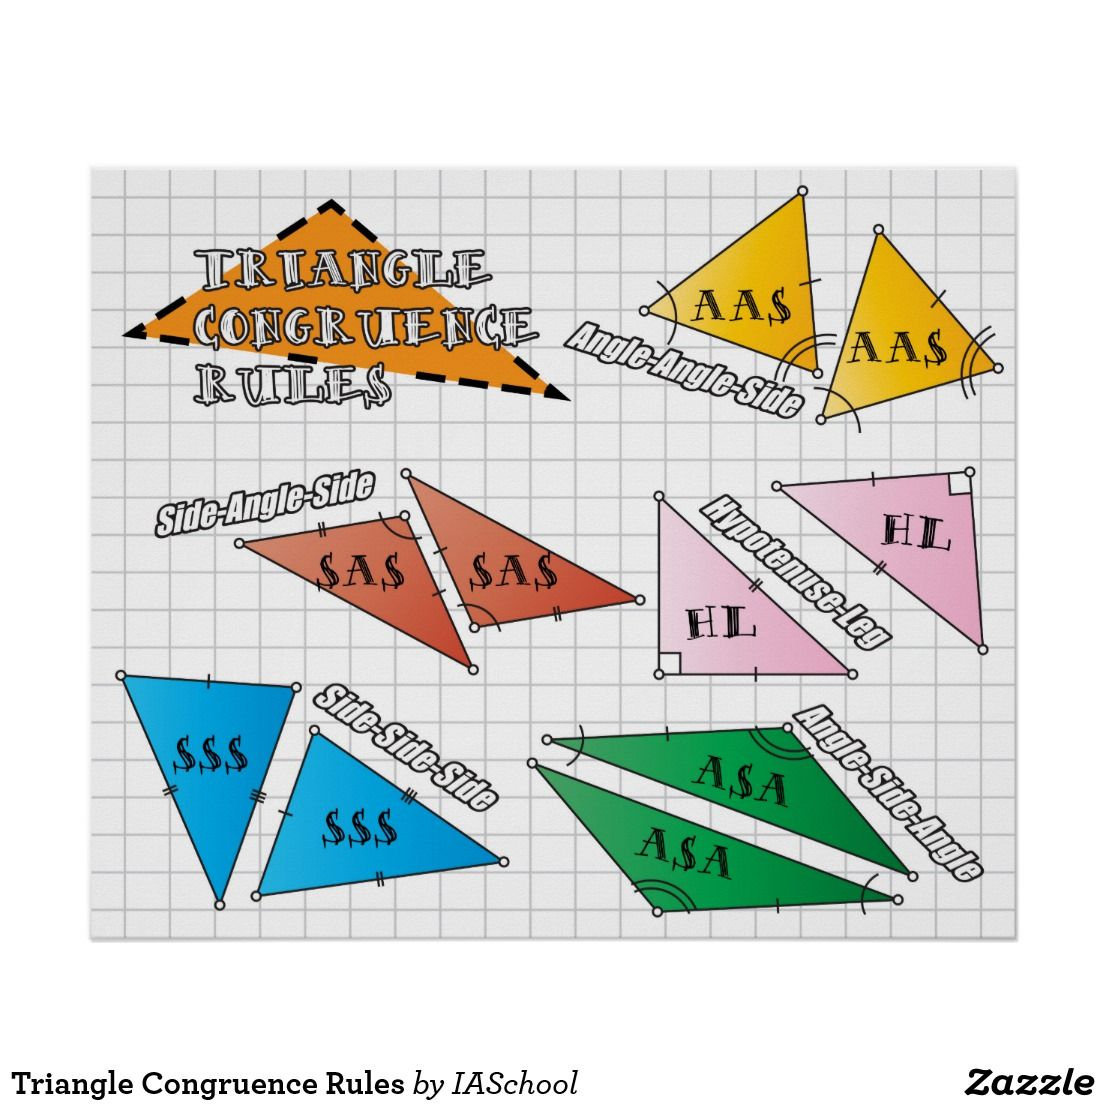 Triangle Congruence Rules Poster Zazzle Com In 2020 School Posters Math Geometry Poster Prints